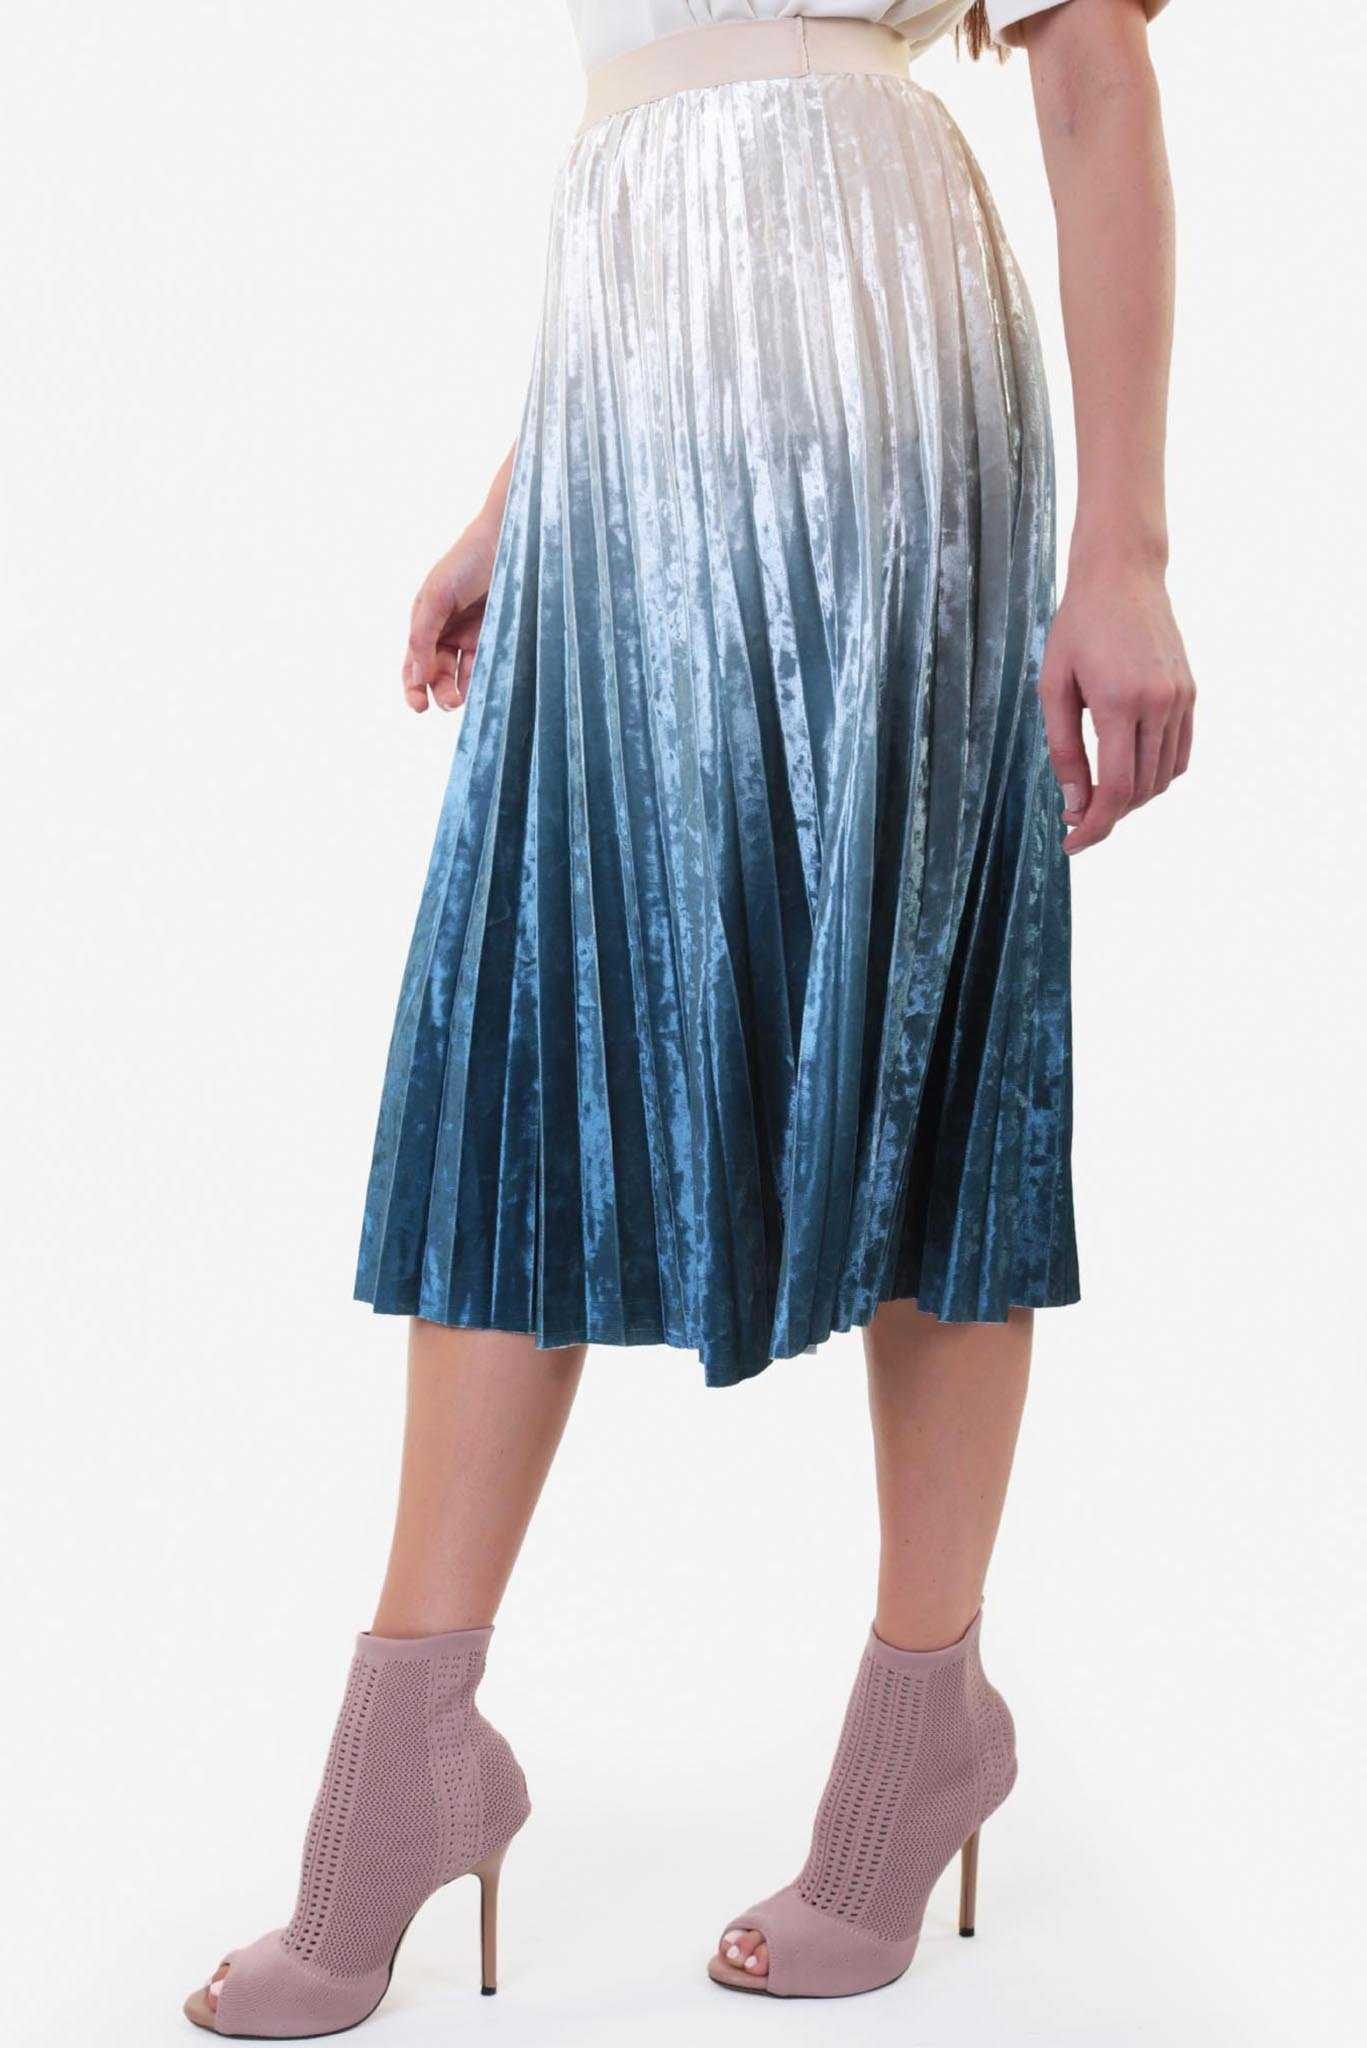 Ombré Velvet Skirt - Blue | Raw Orange